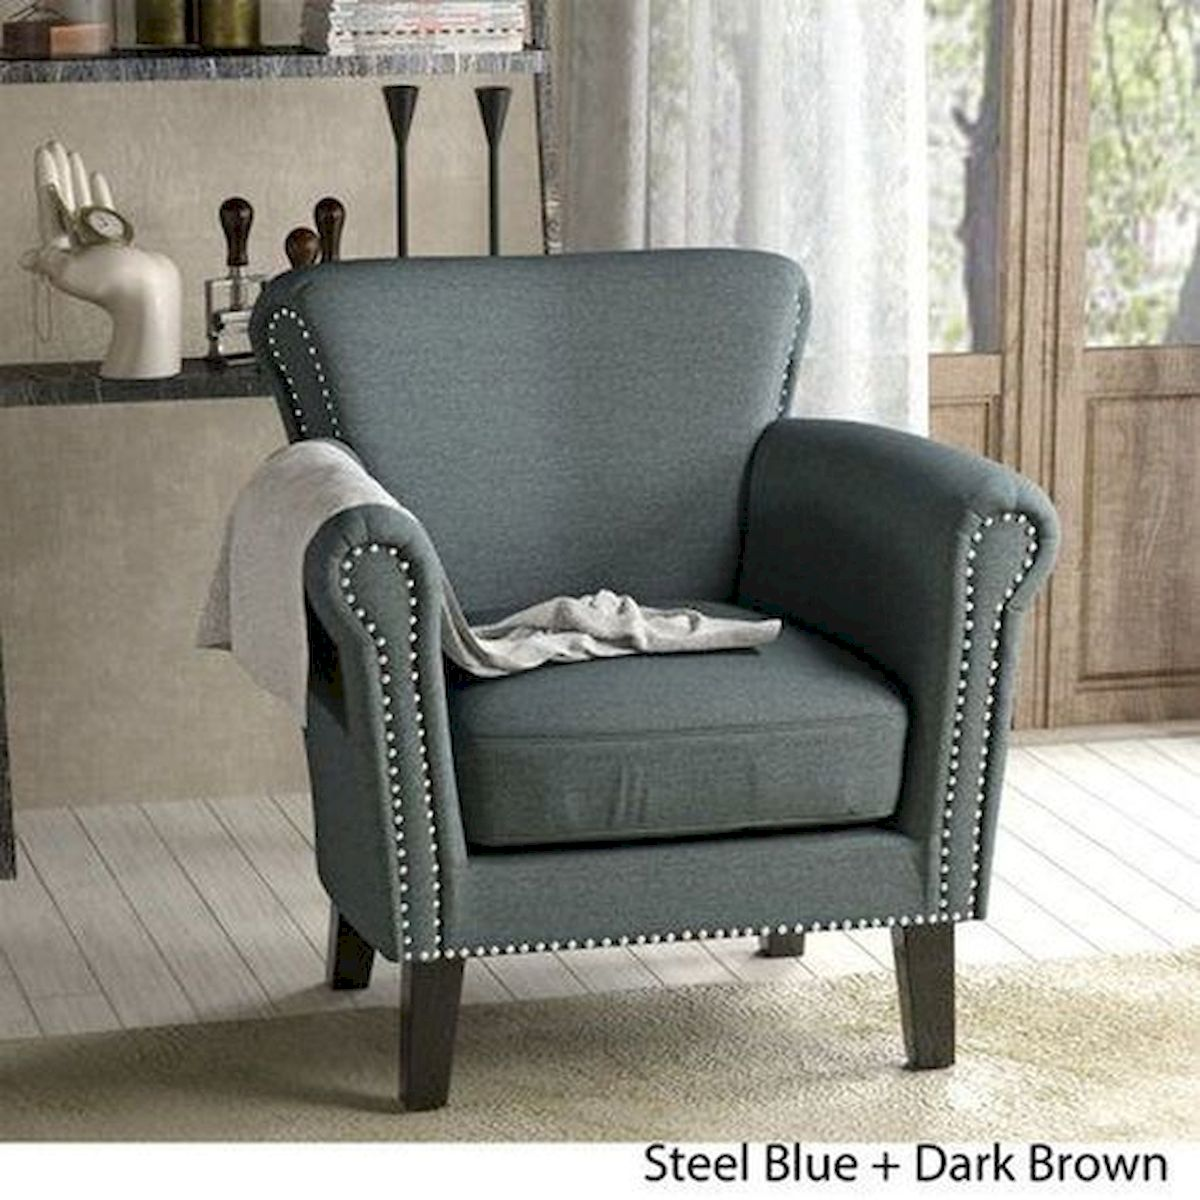 50 Diy Relaxing Chairs Design Ideas That Will Make Your Home